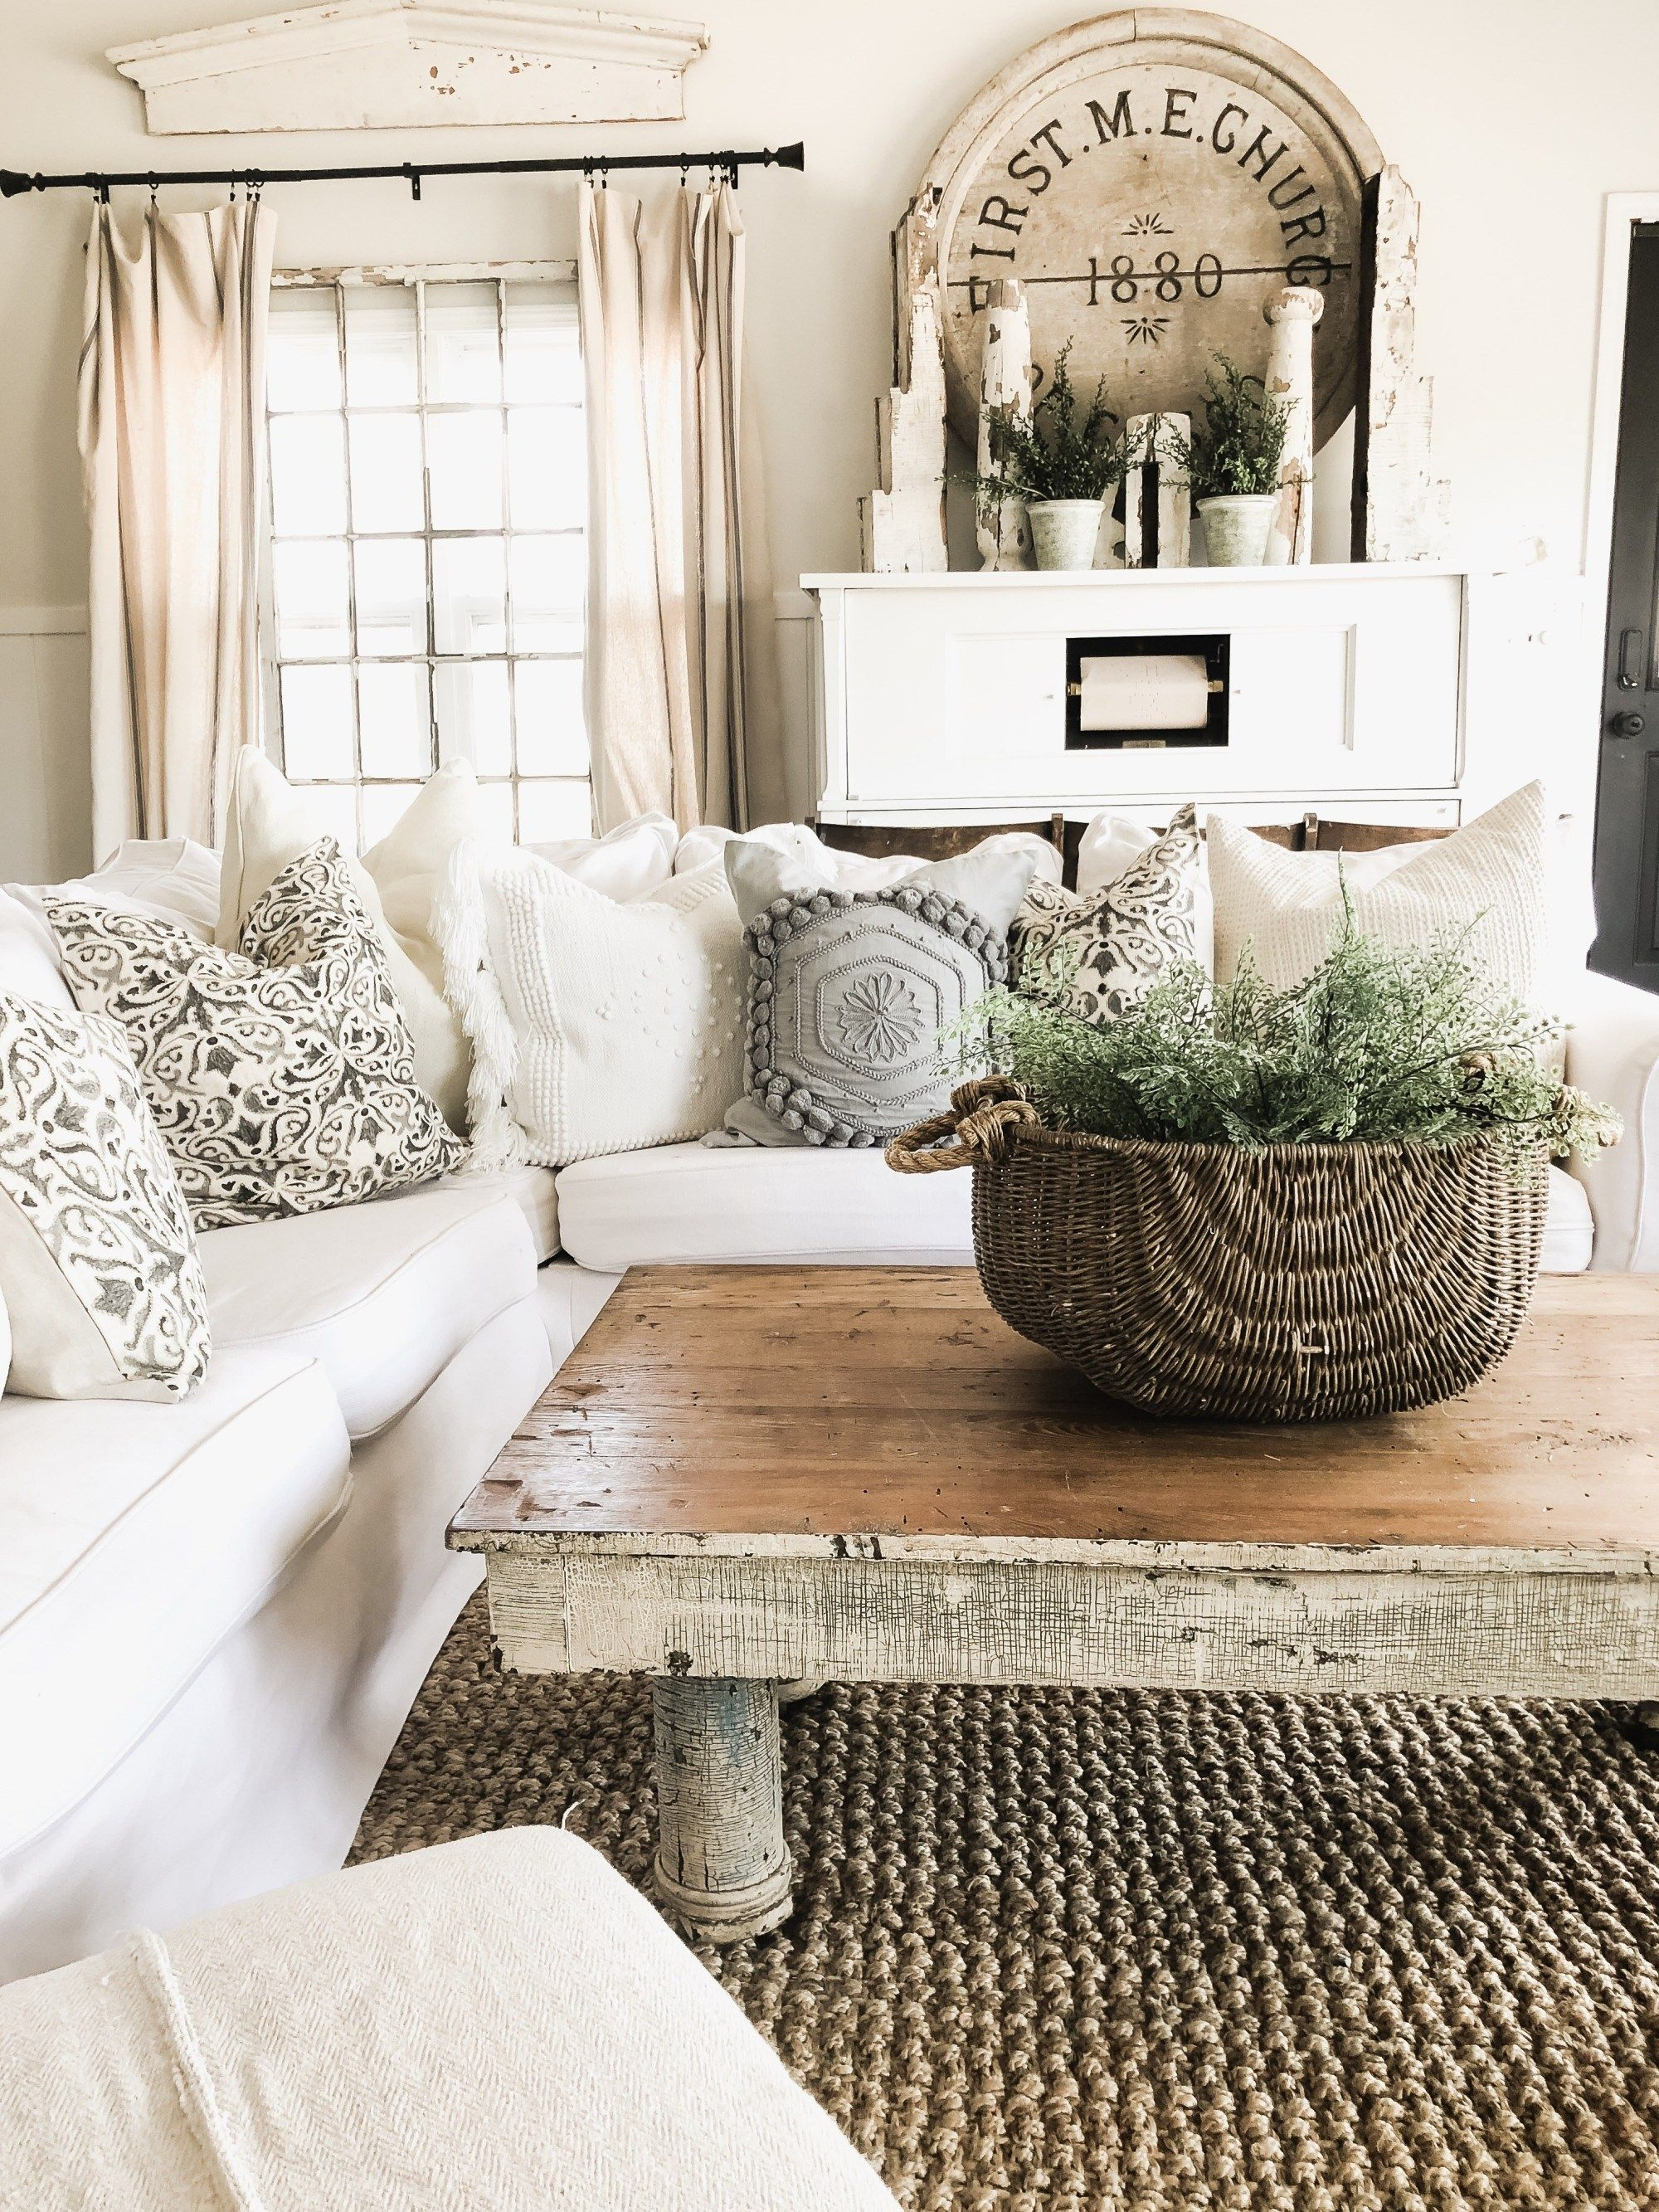 Diy Greenery Basket Decor Living Room Decor Rustic Rustic